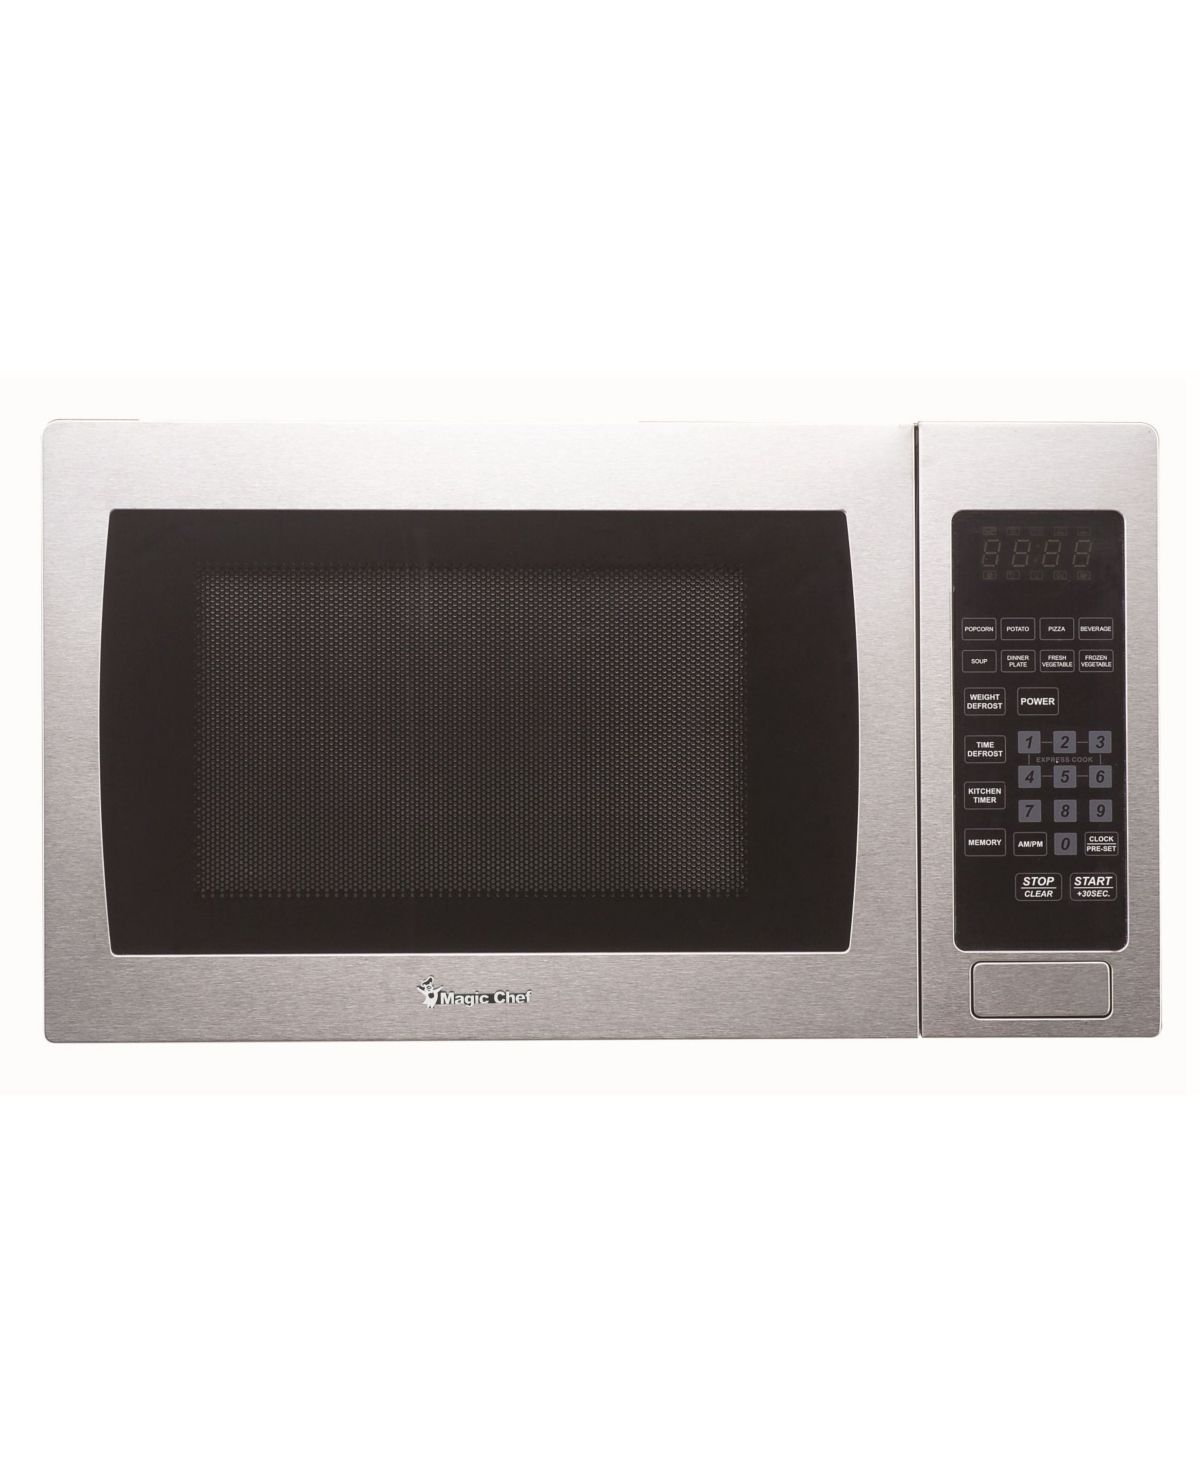 Intel Magic Chef 0 9 Cubic Feet 900w Countertop Microwave Oven